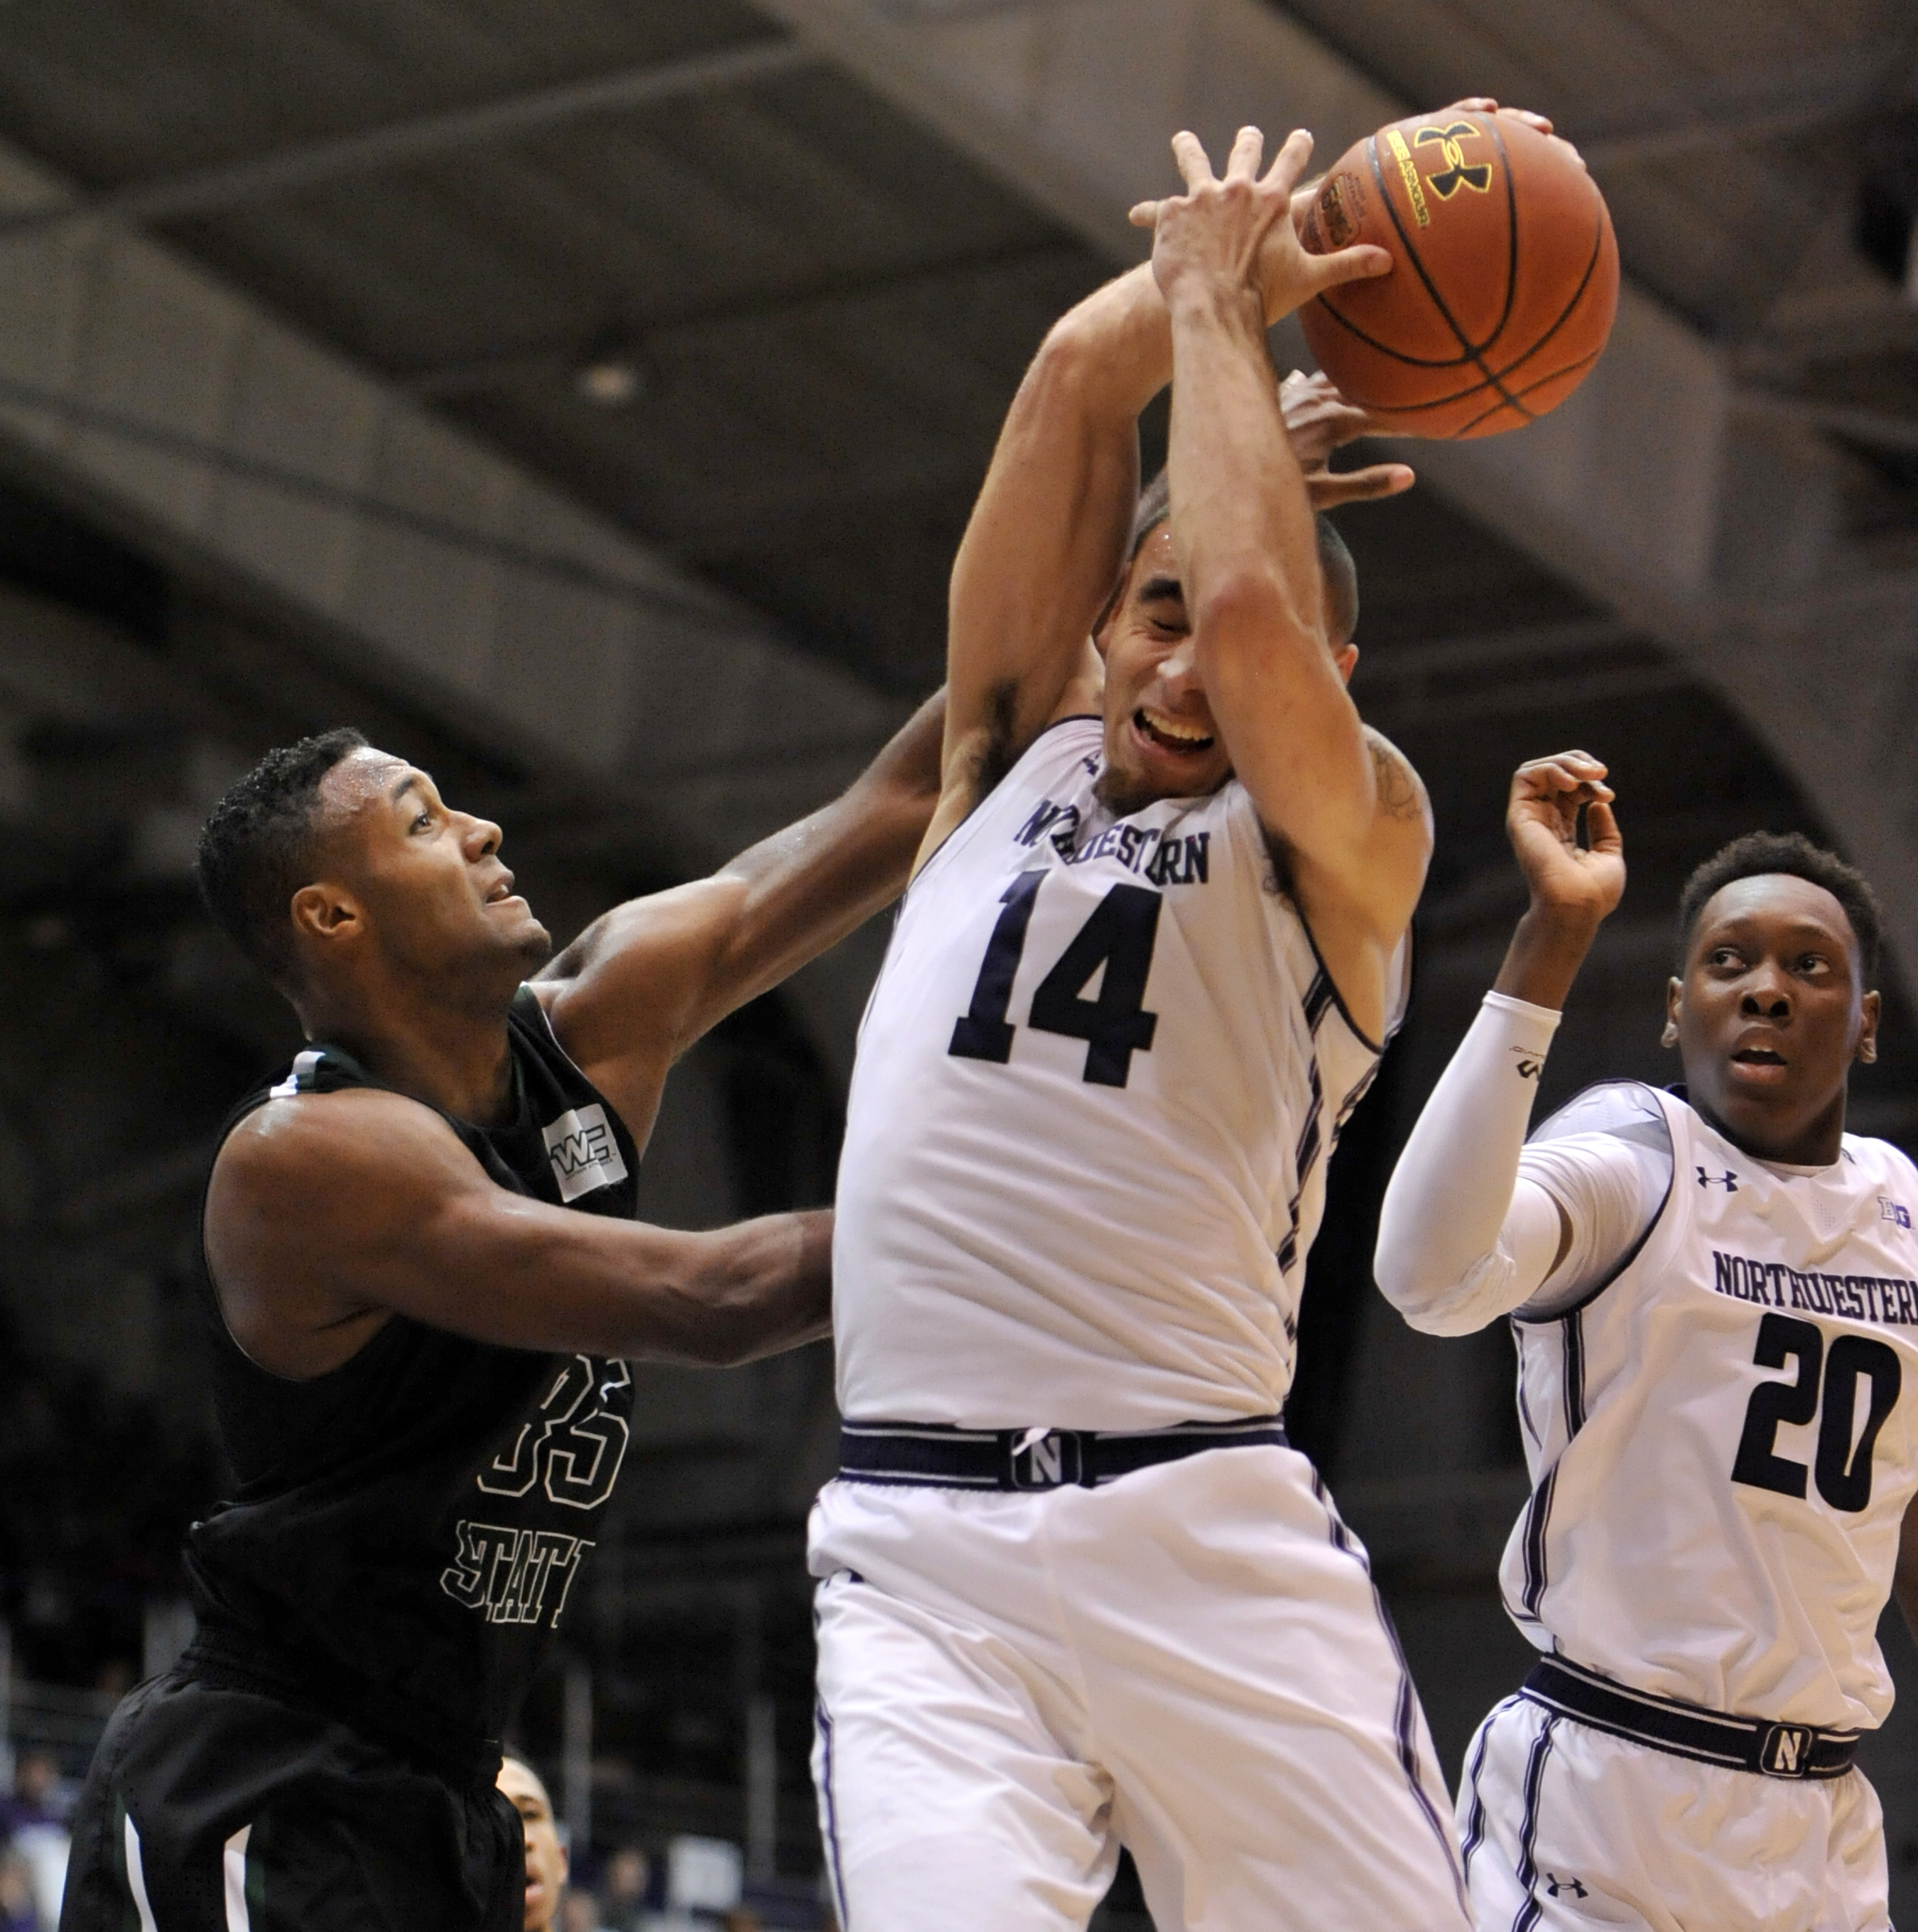 Northwestern's Tre Demps (14), battles Chicago State's Devon Friend (35), for a rebound while Northwestern's Scottie Lindsey (20), looks on during the first half of a basketball game Sunday, Dec. 13, 2015, in Evanston, Ill. (AP Photo/Paul Beaty)